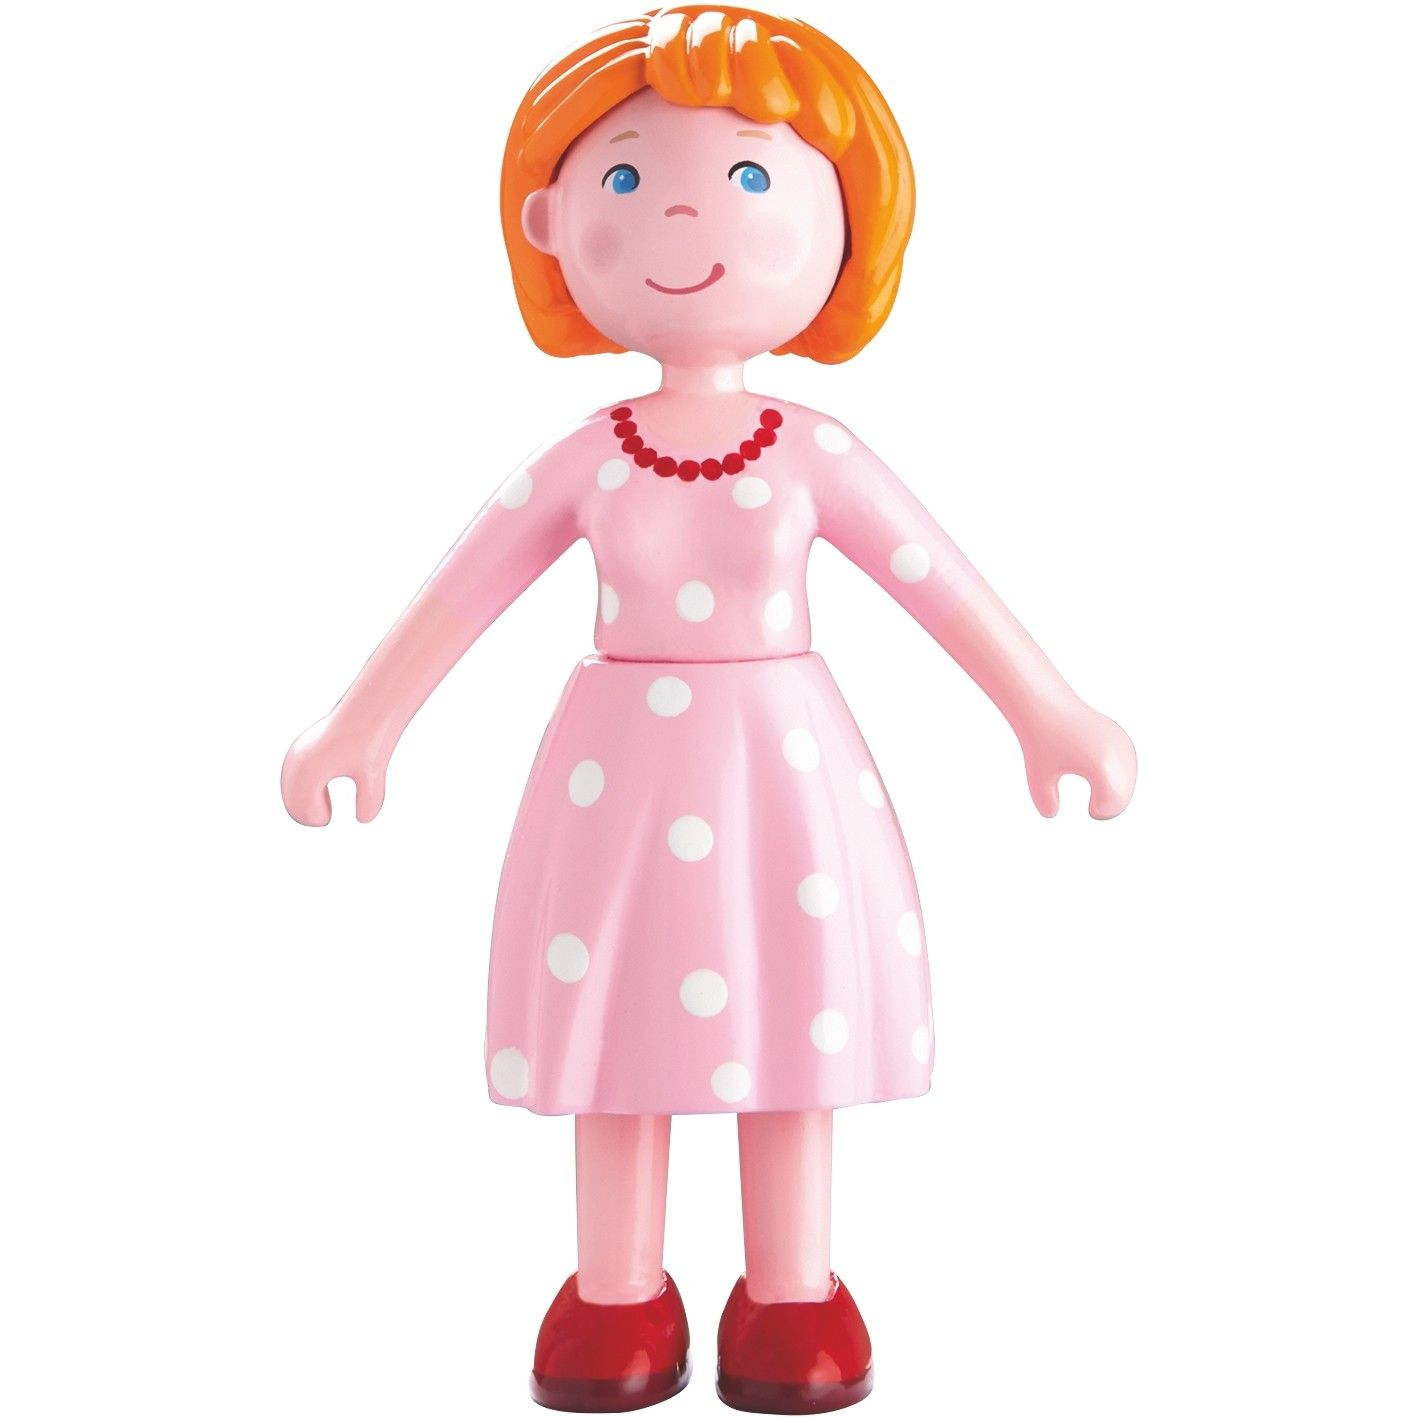 Little Friends - Mom Katrin - Doll Houses Figure by Haba (302007)